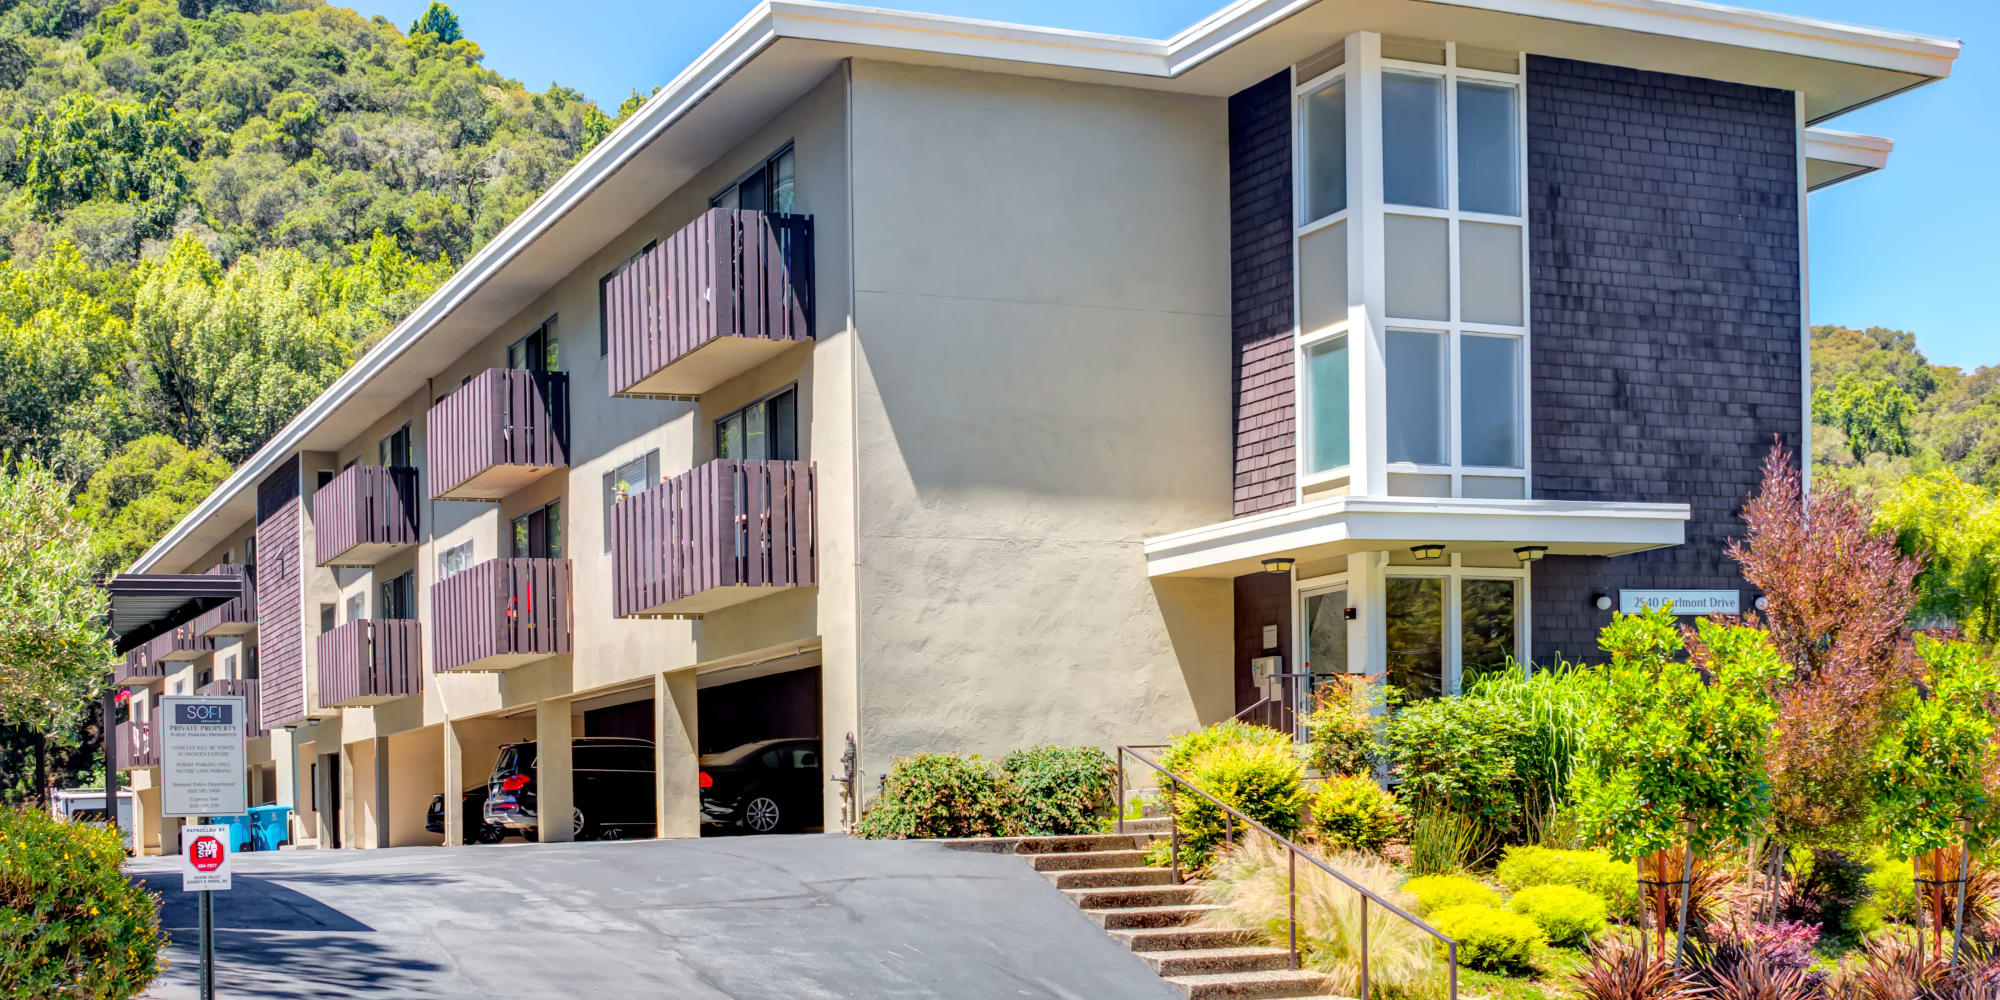 Apartments at Sofi Belmont Hills in Belmont, California